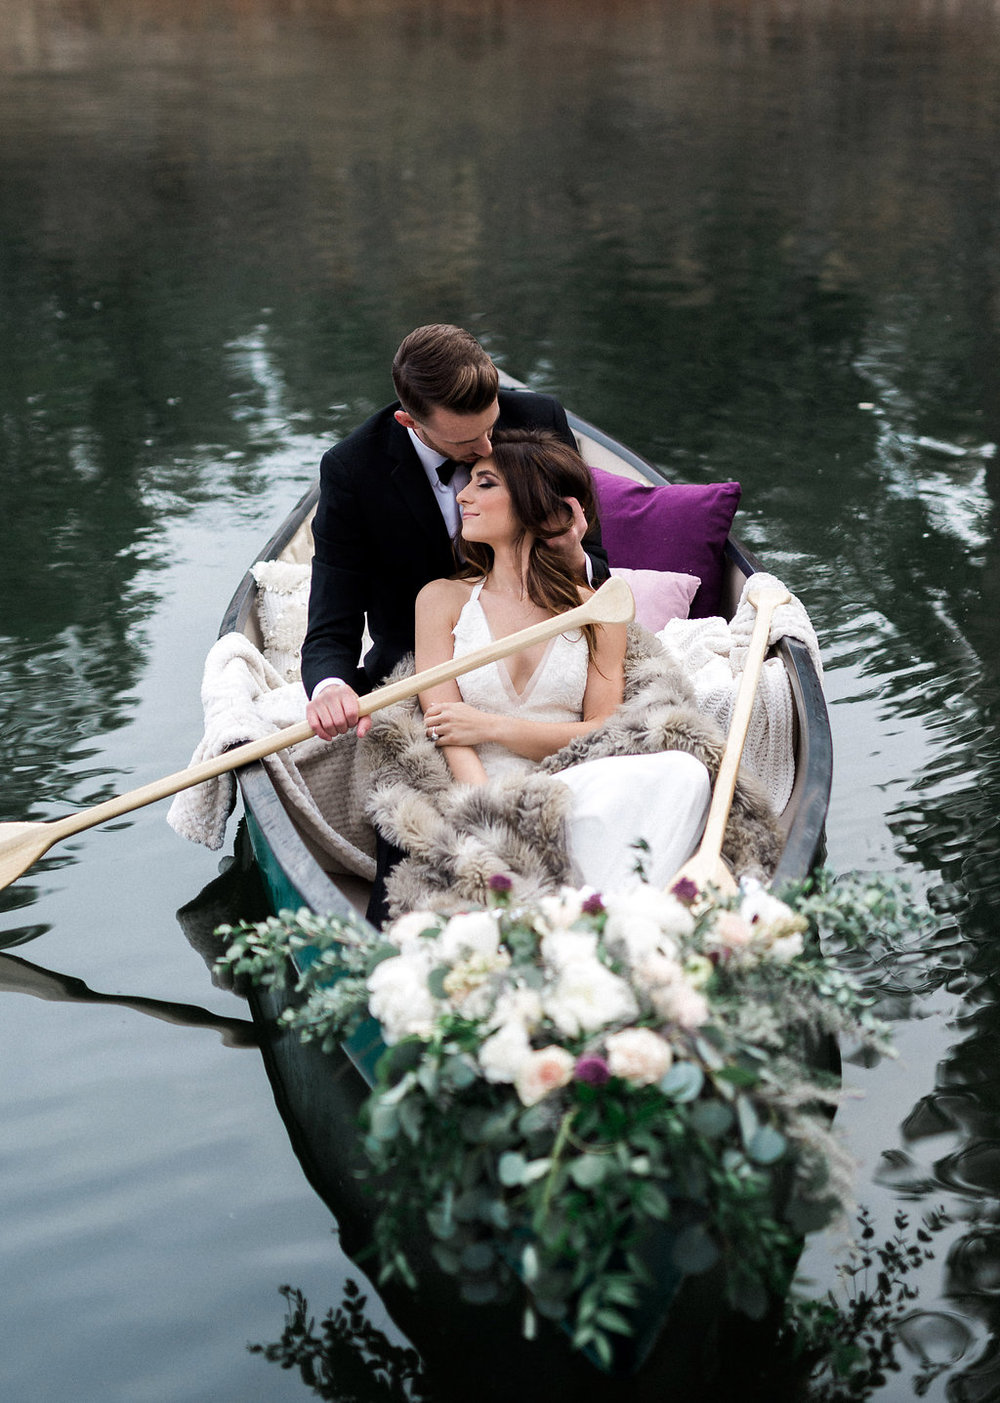 INSPIRED BY THIS - WINTER LAKESIDE ELOPEMENT2017